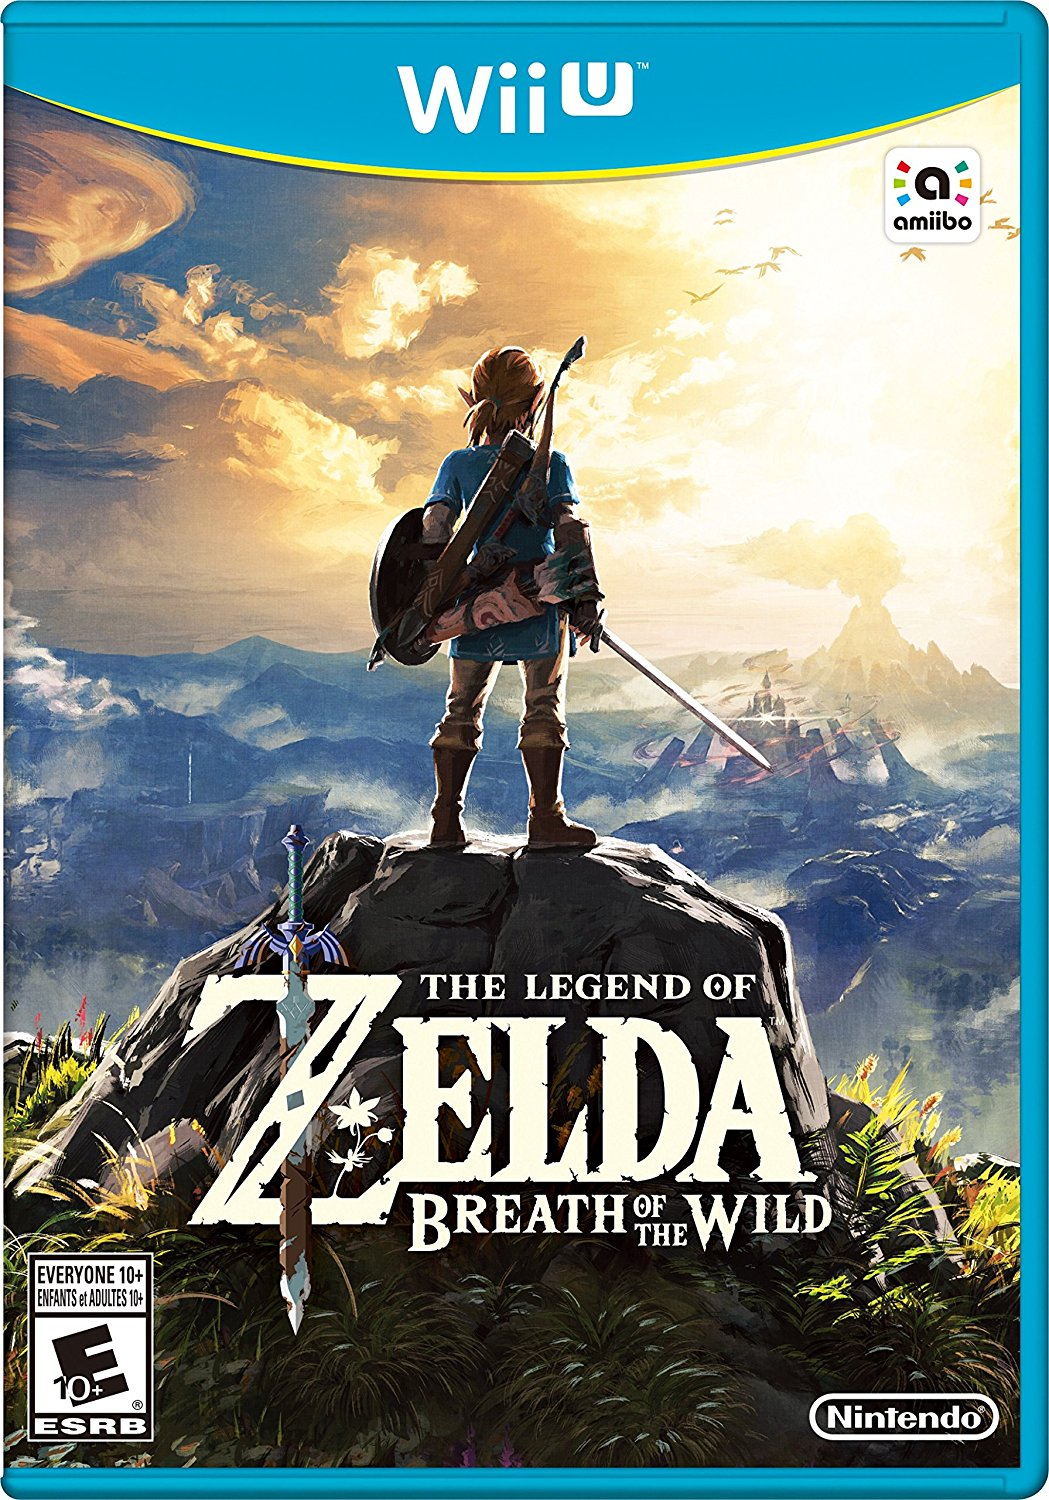 Wii U - The Legend of Zelda: Breath of the Wild USA